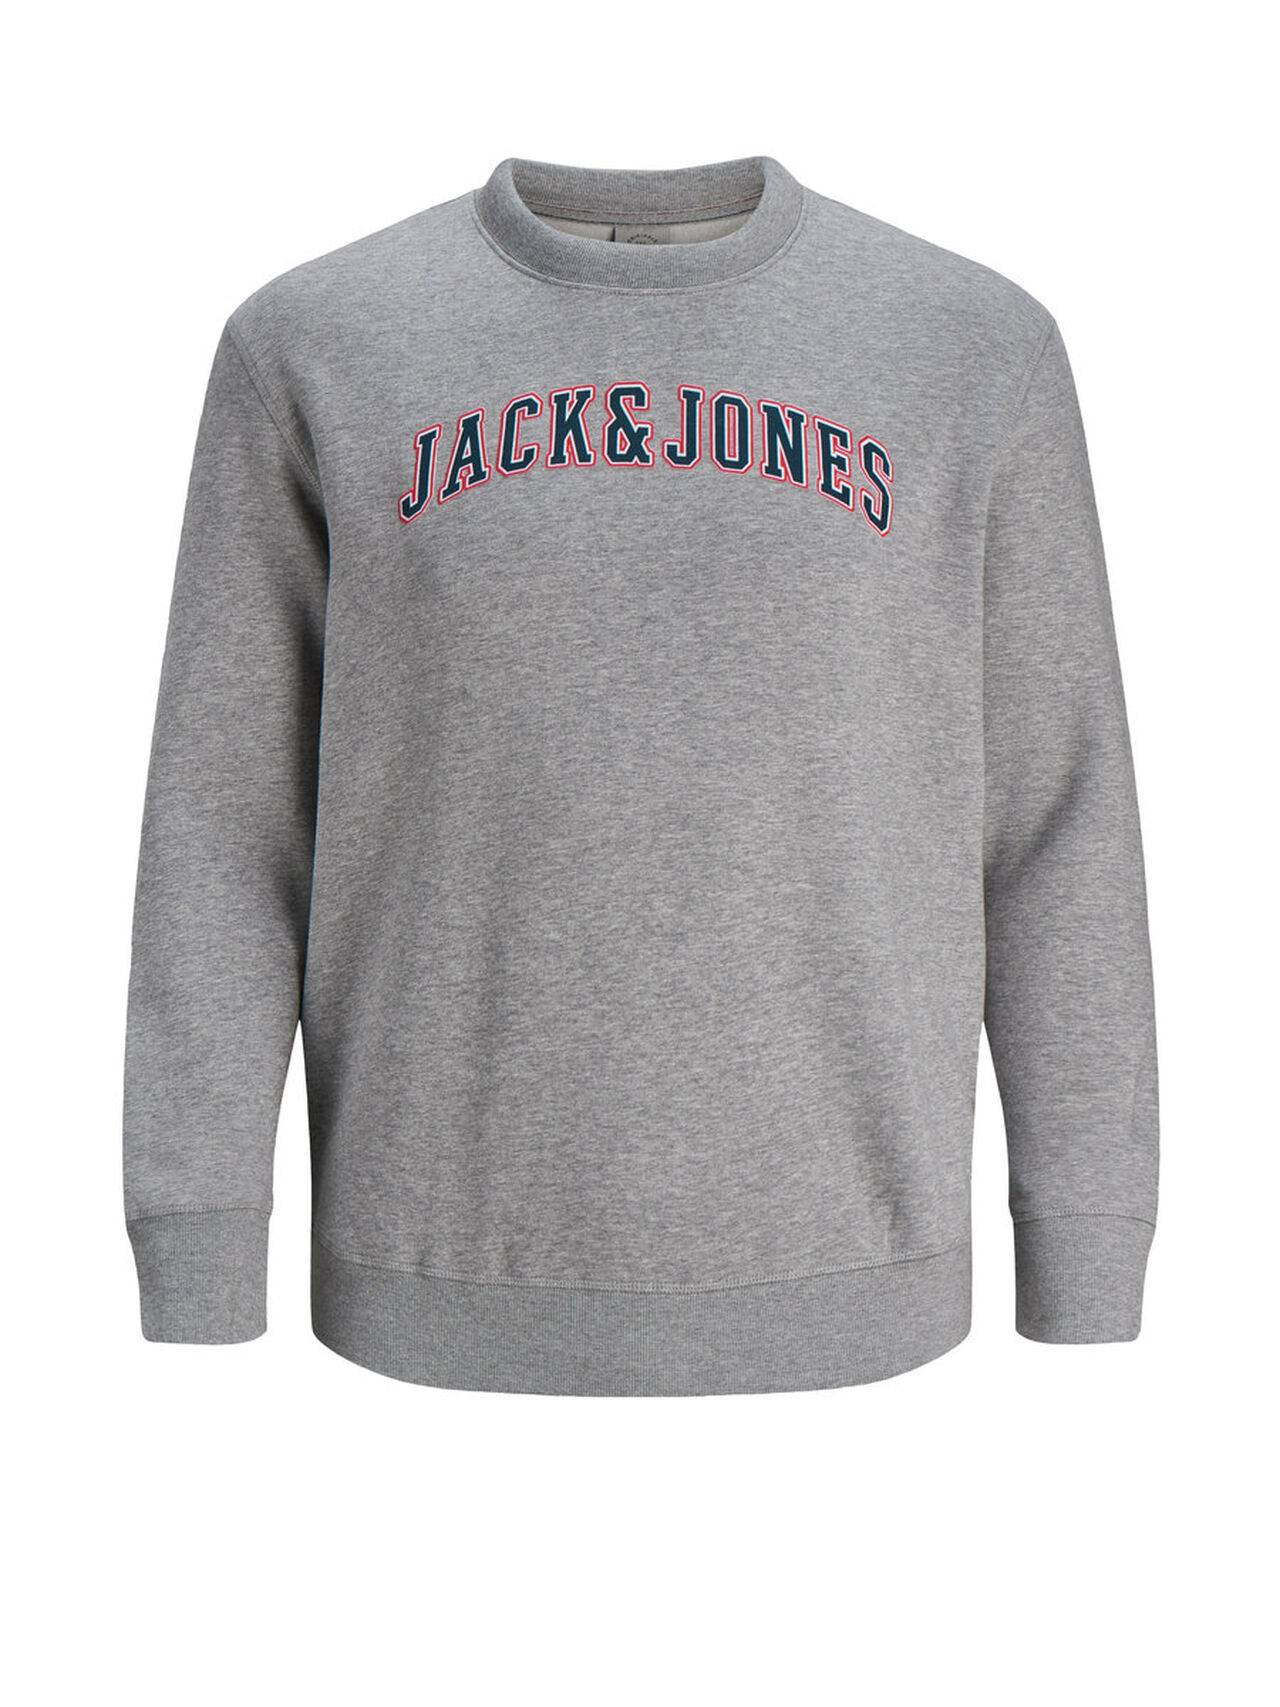 JACK & JONES Crew Neck Plus Size Sweatshirt Men Grey LightGreyMelange